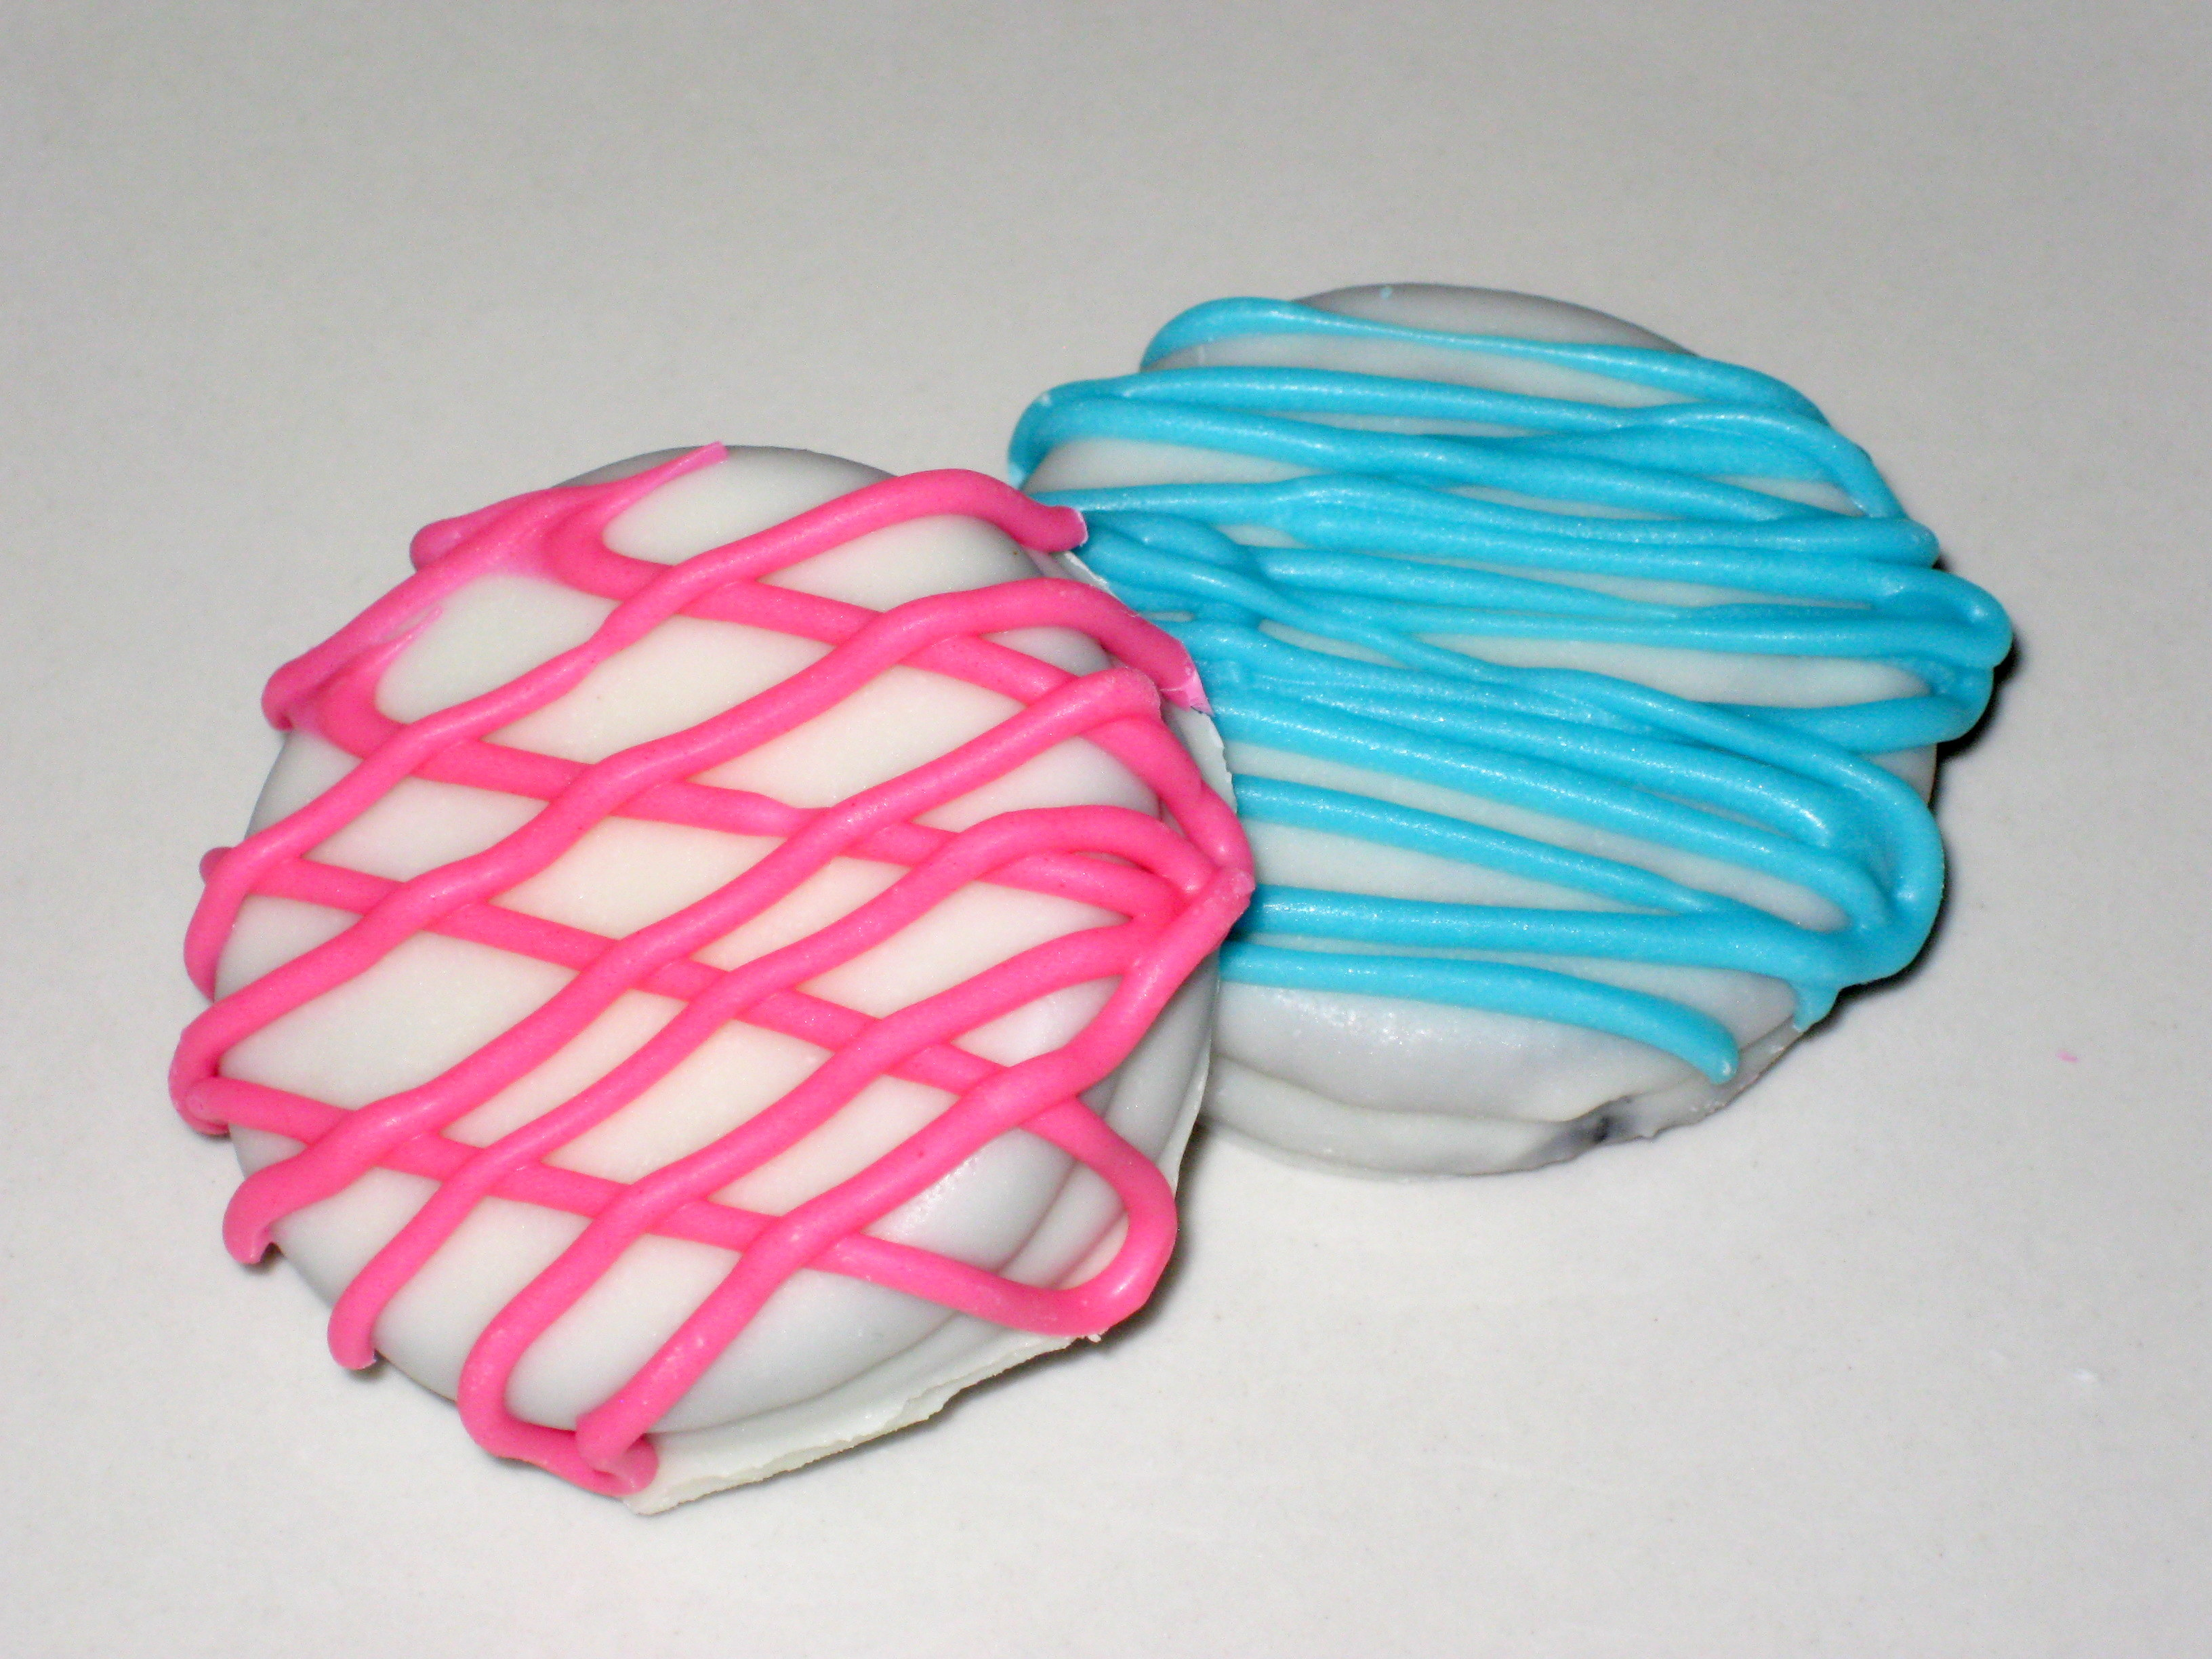 Baby Oreos - 1 Dozen (12) Drizzled Dipped Cookies Pink Blue Baby ...